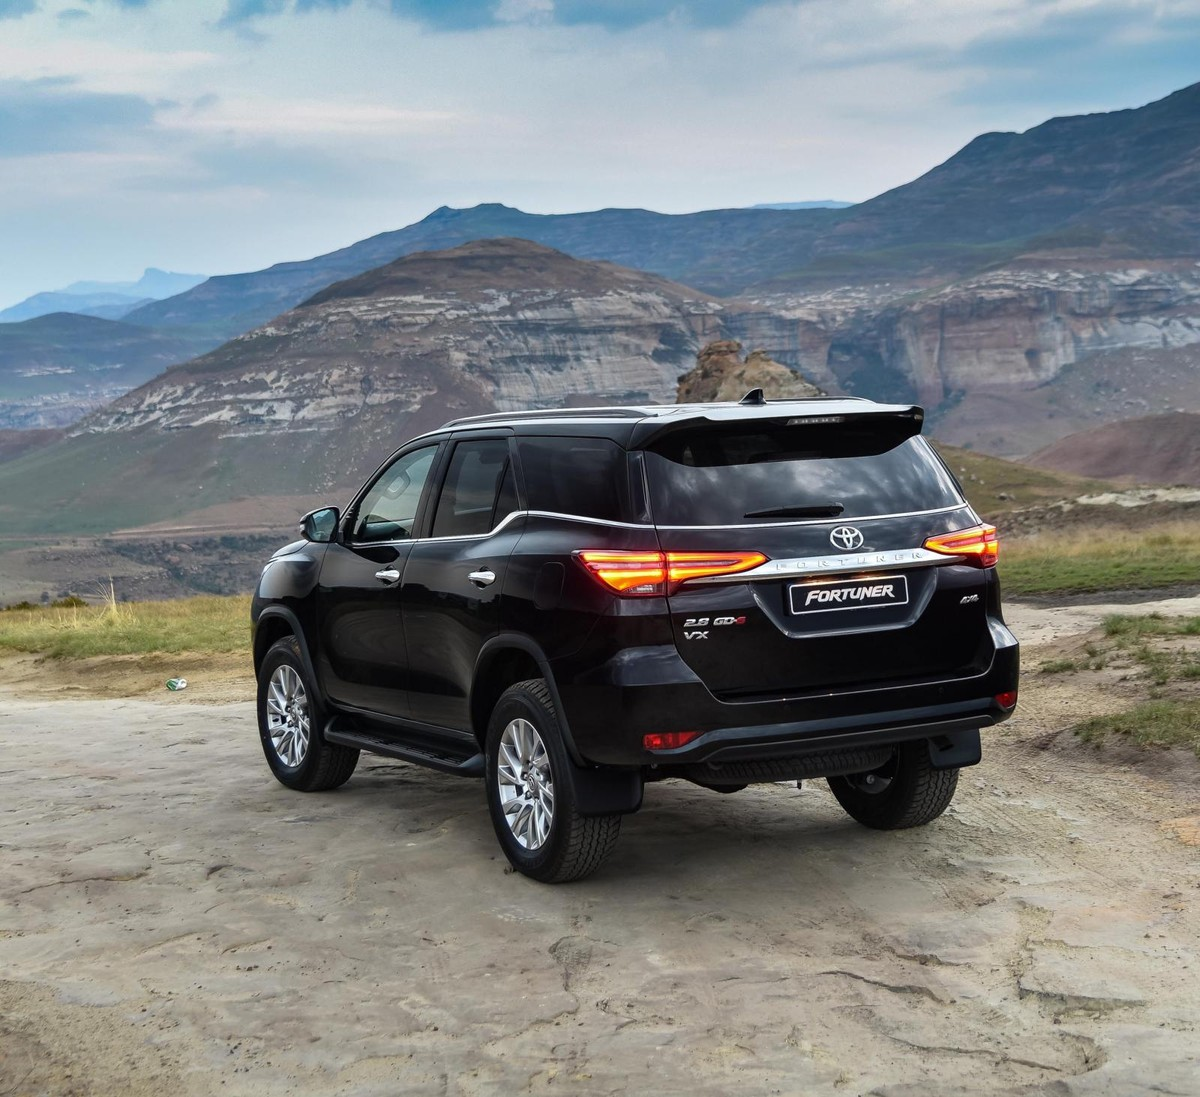 2020 Toyota Fortuner: 5 Key Changes - Cars.co.za